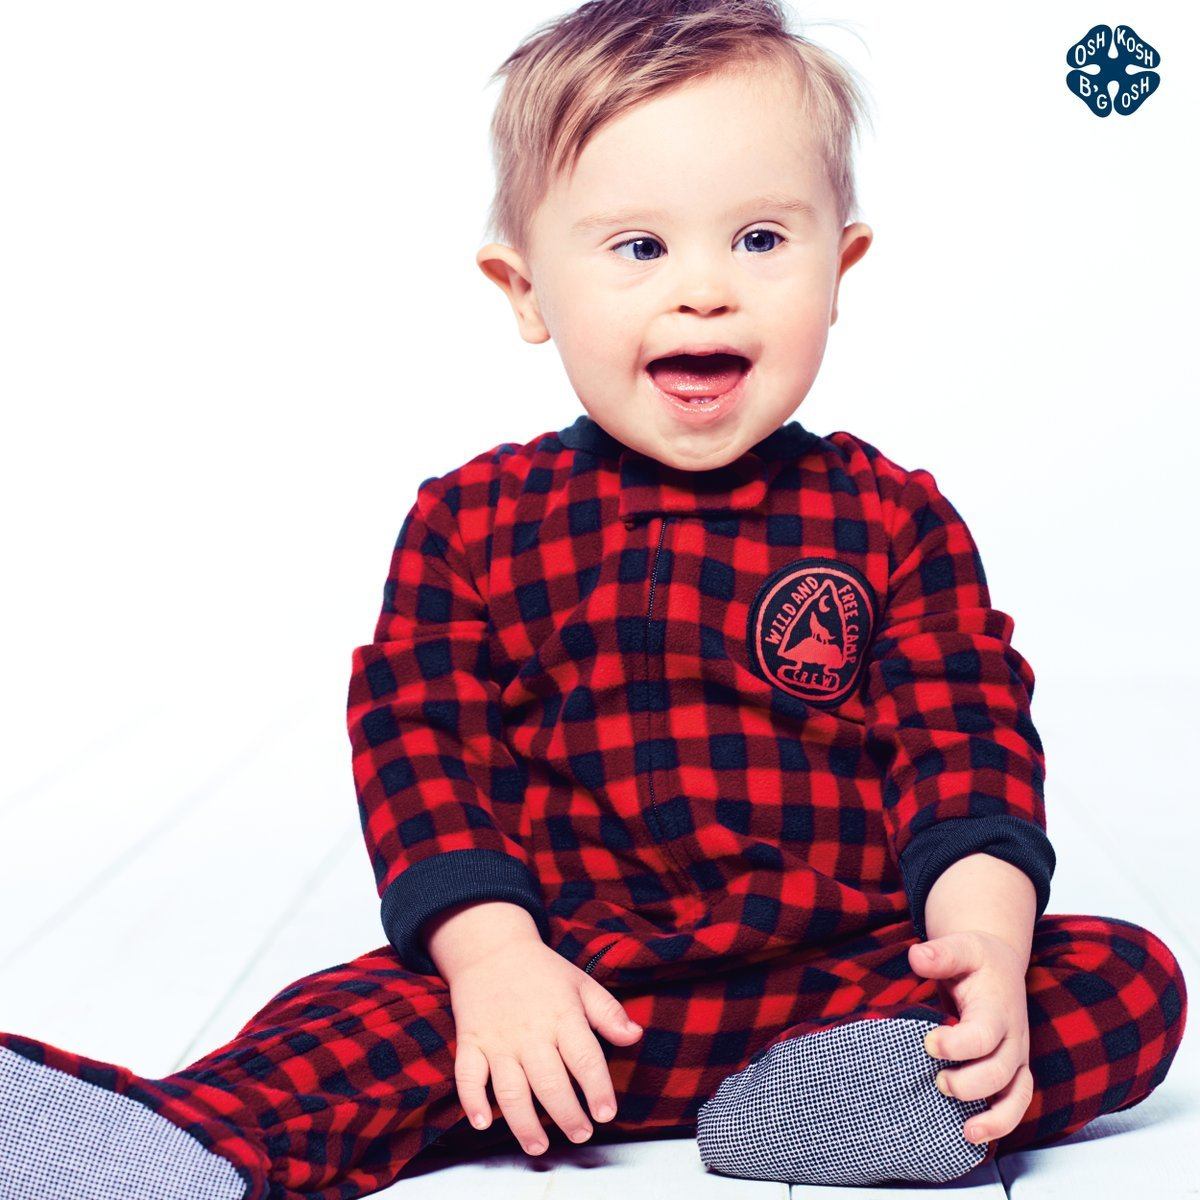 See Asher Nash, Adorable Toddler Model with Down Syndrome, in His First Photo Shoot